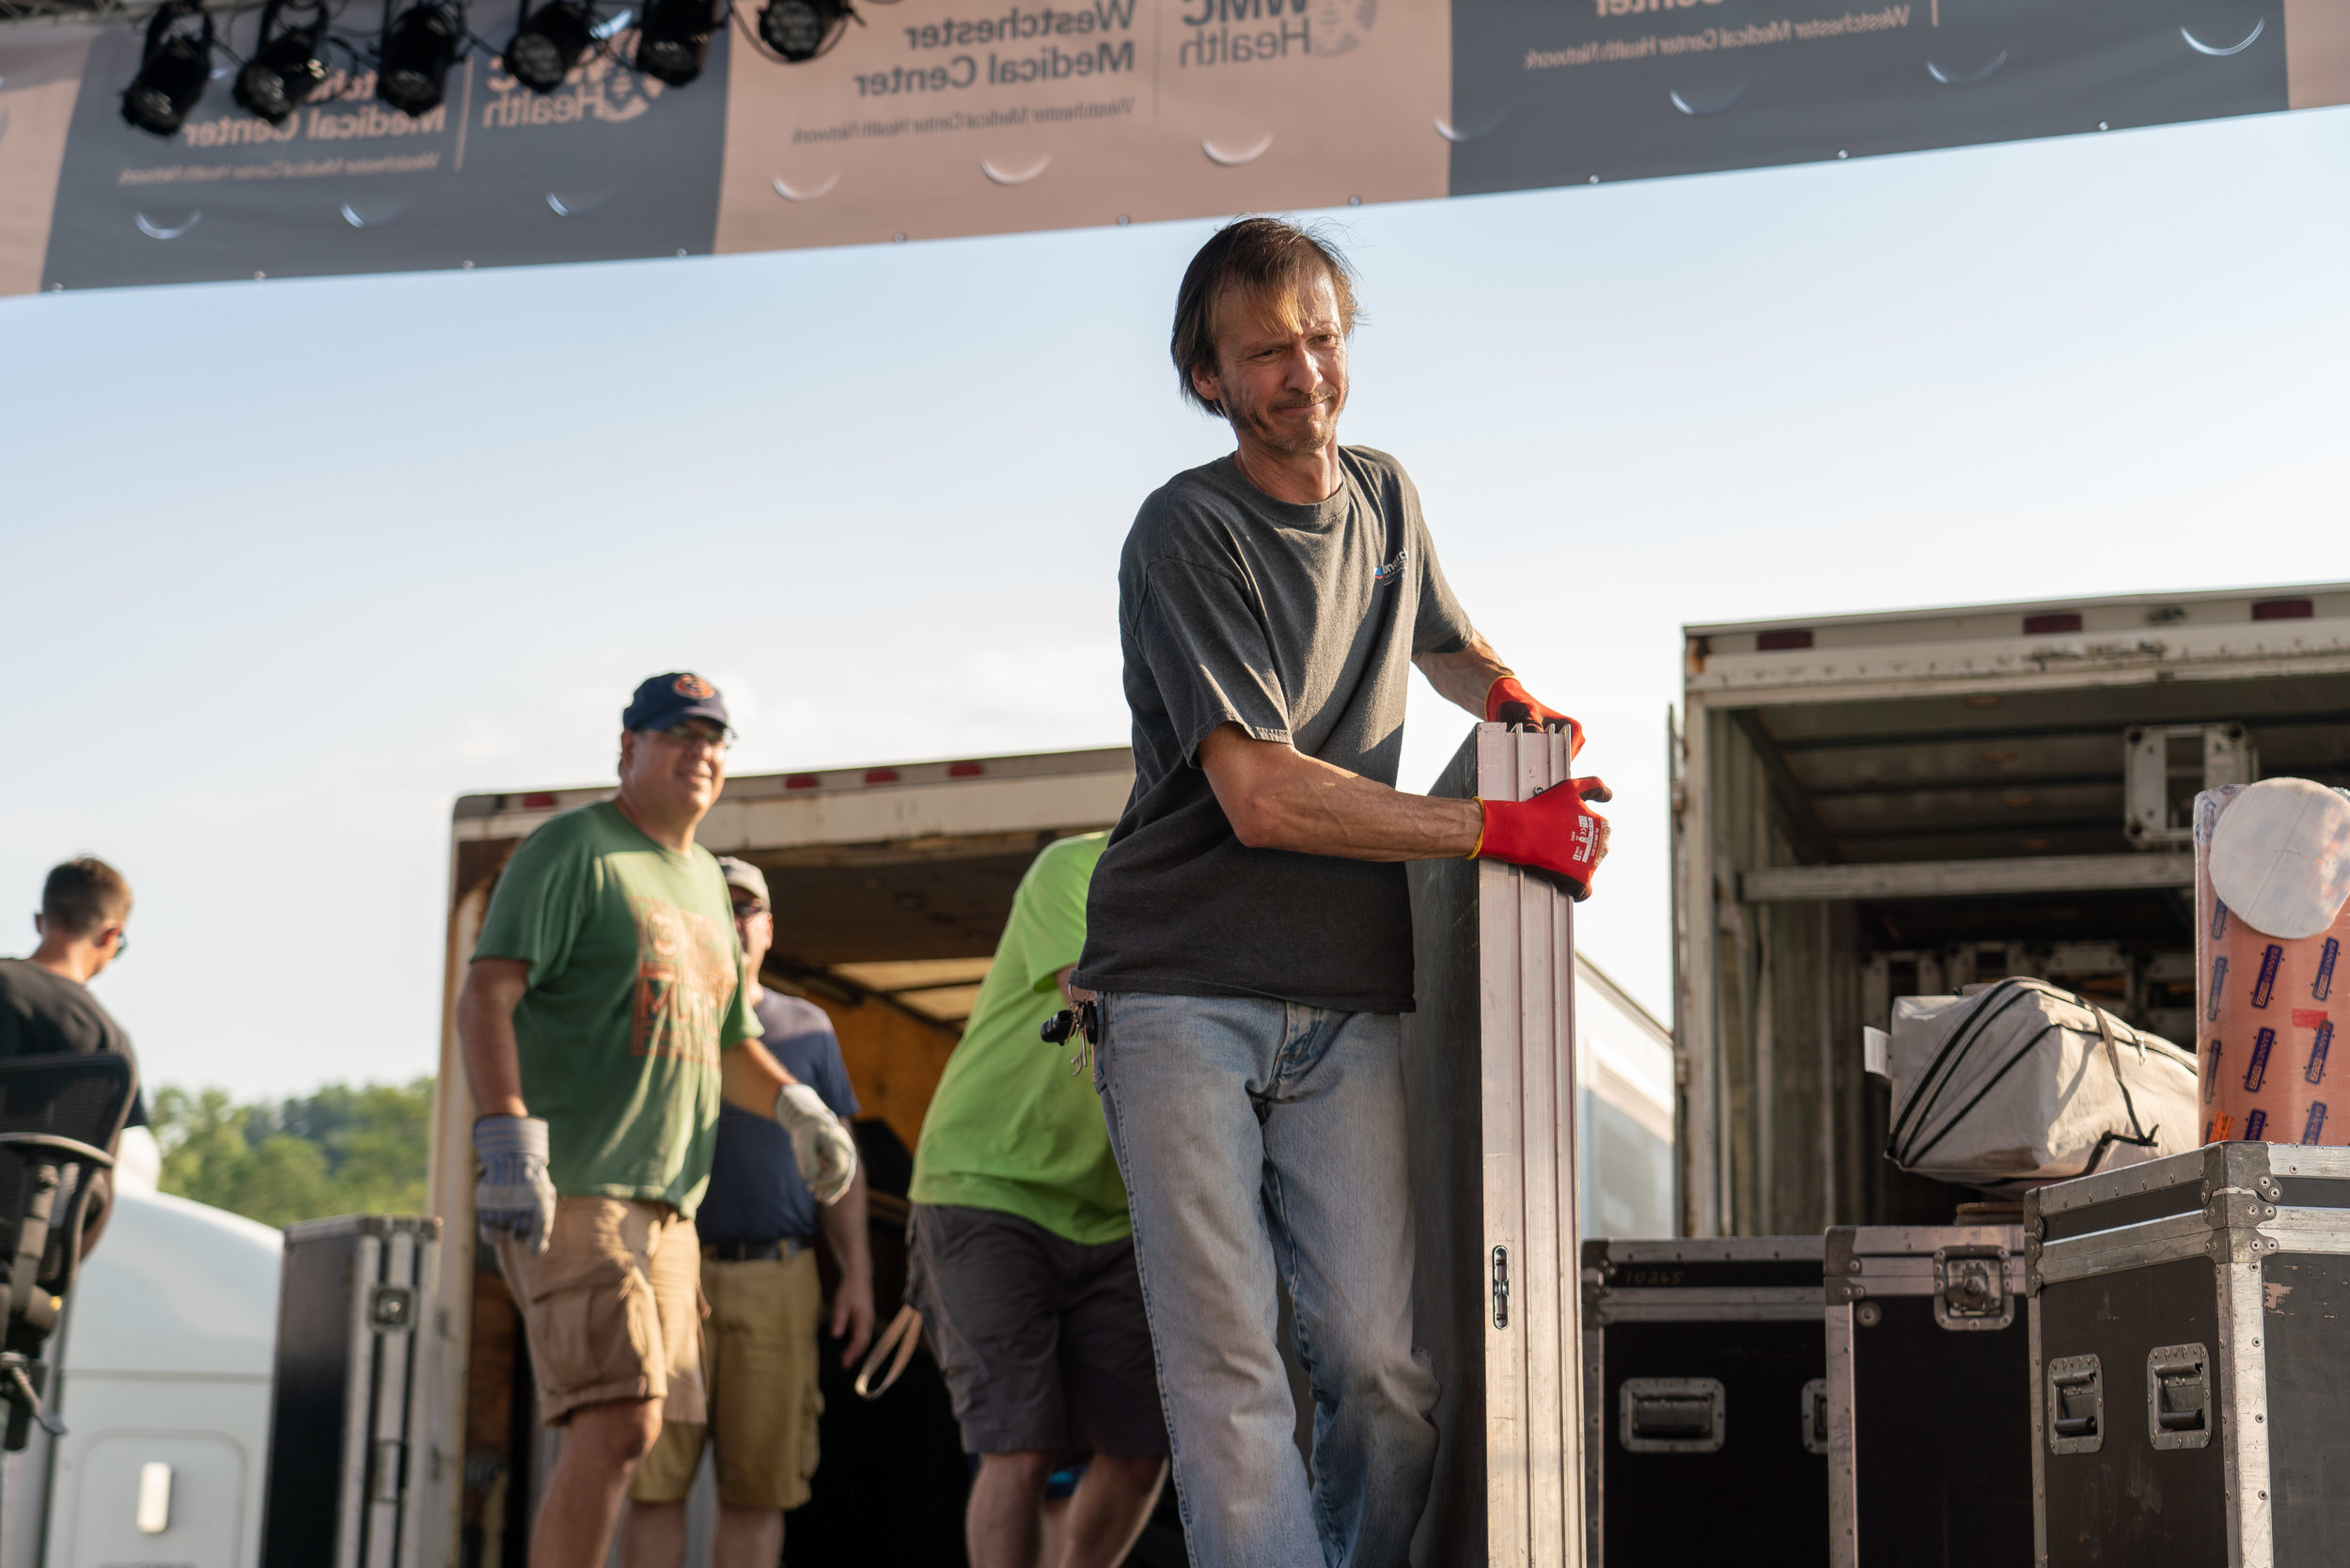 Party Stage Crew Chief Glen assembling the Main Stage © 2018 Jonathan Cunningham